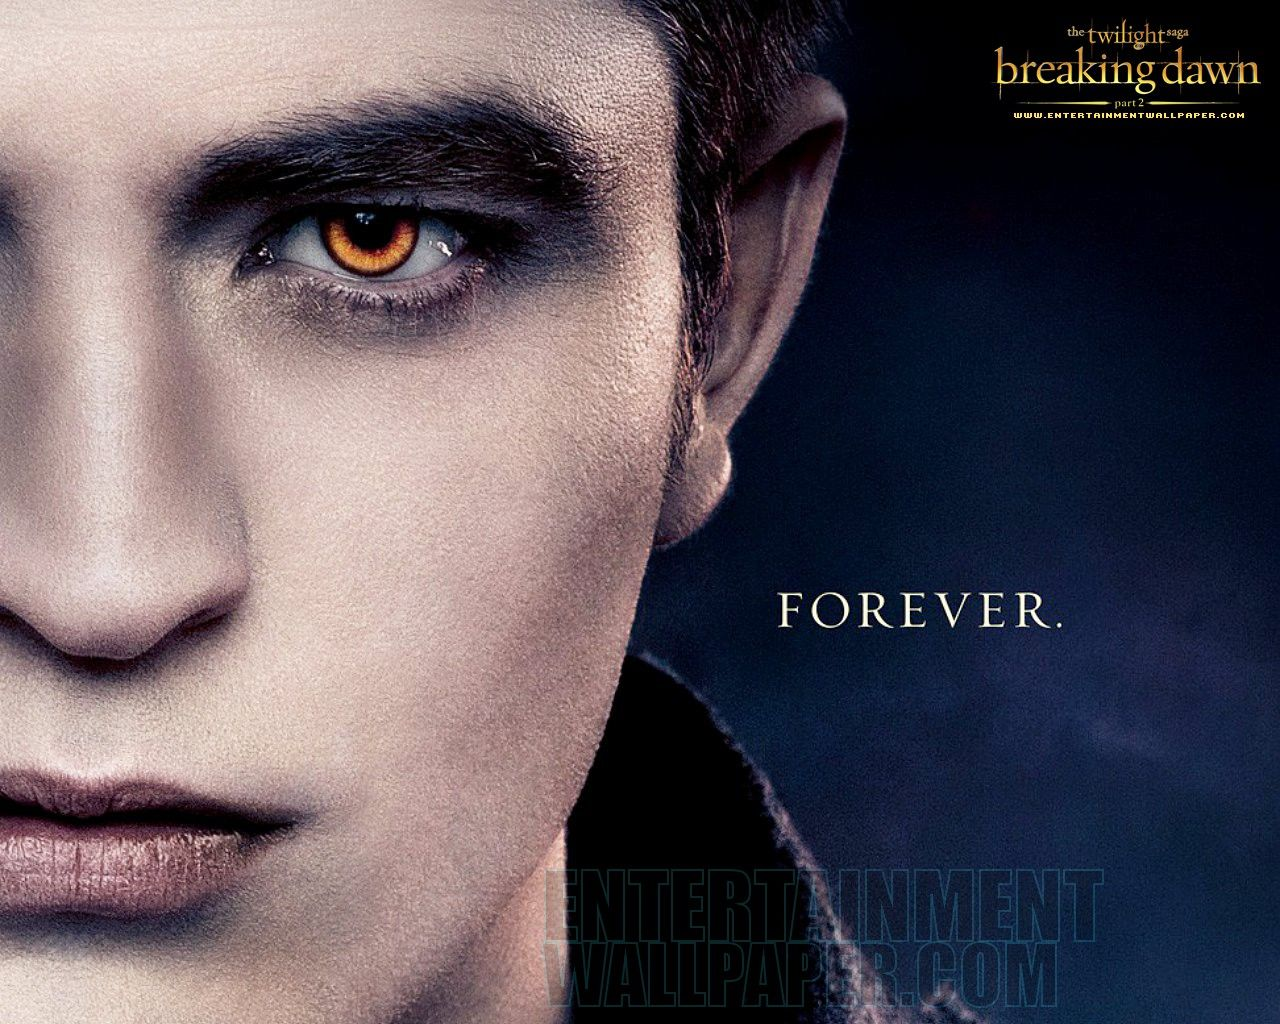 Image cullen family breaking dawn wallpaper twilight series - Find This Pin And More On Twilight Forever 3 Twilight Breaking Dawn Part 2 Edward Hd Desktop Wallpaper